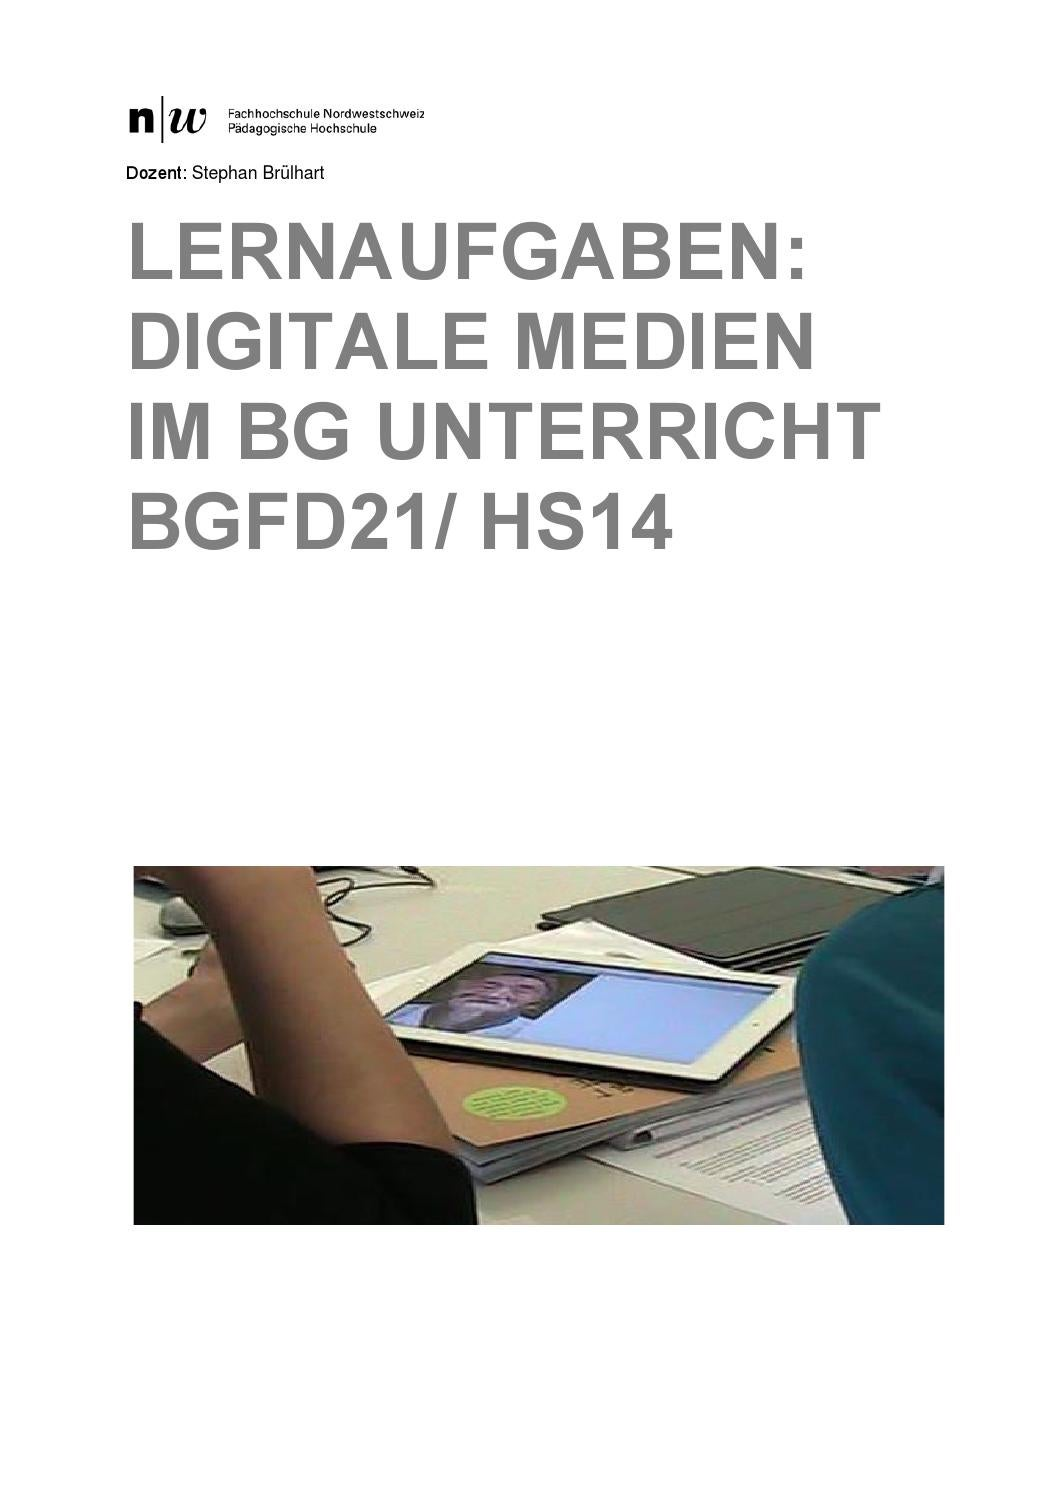 Ebookfdbg21 hs14 by stephan bruelhart - issuu